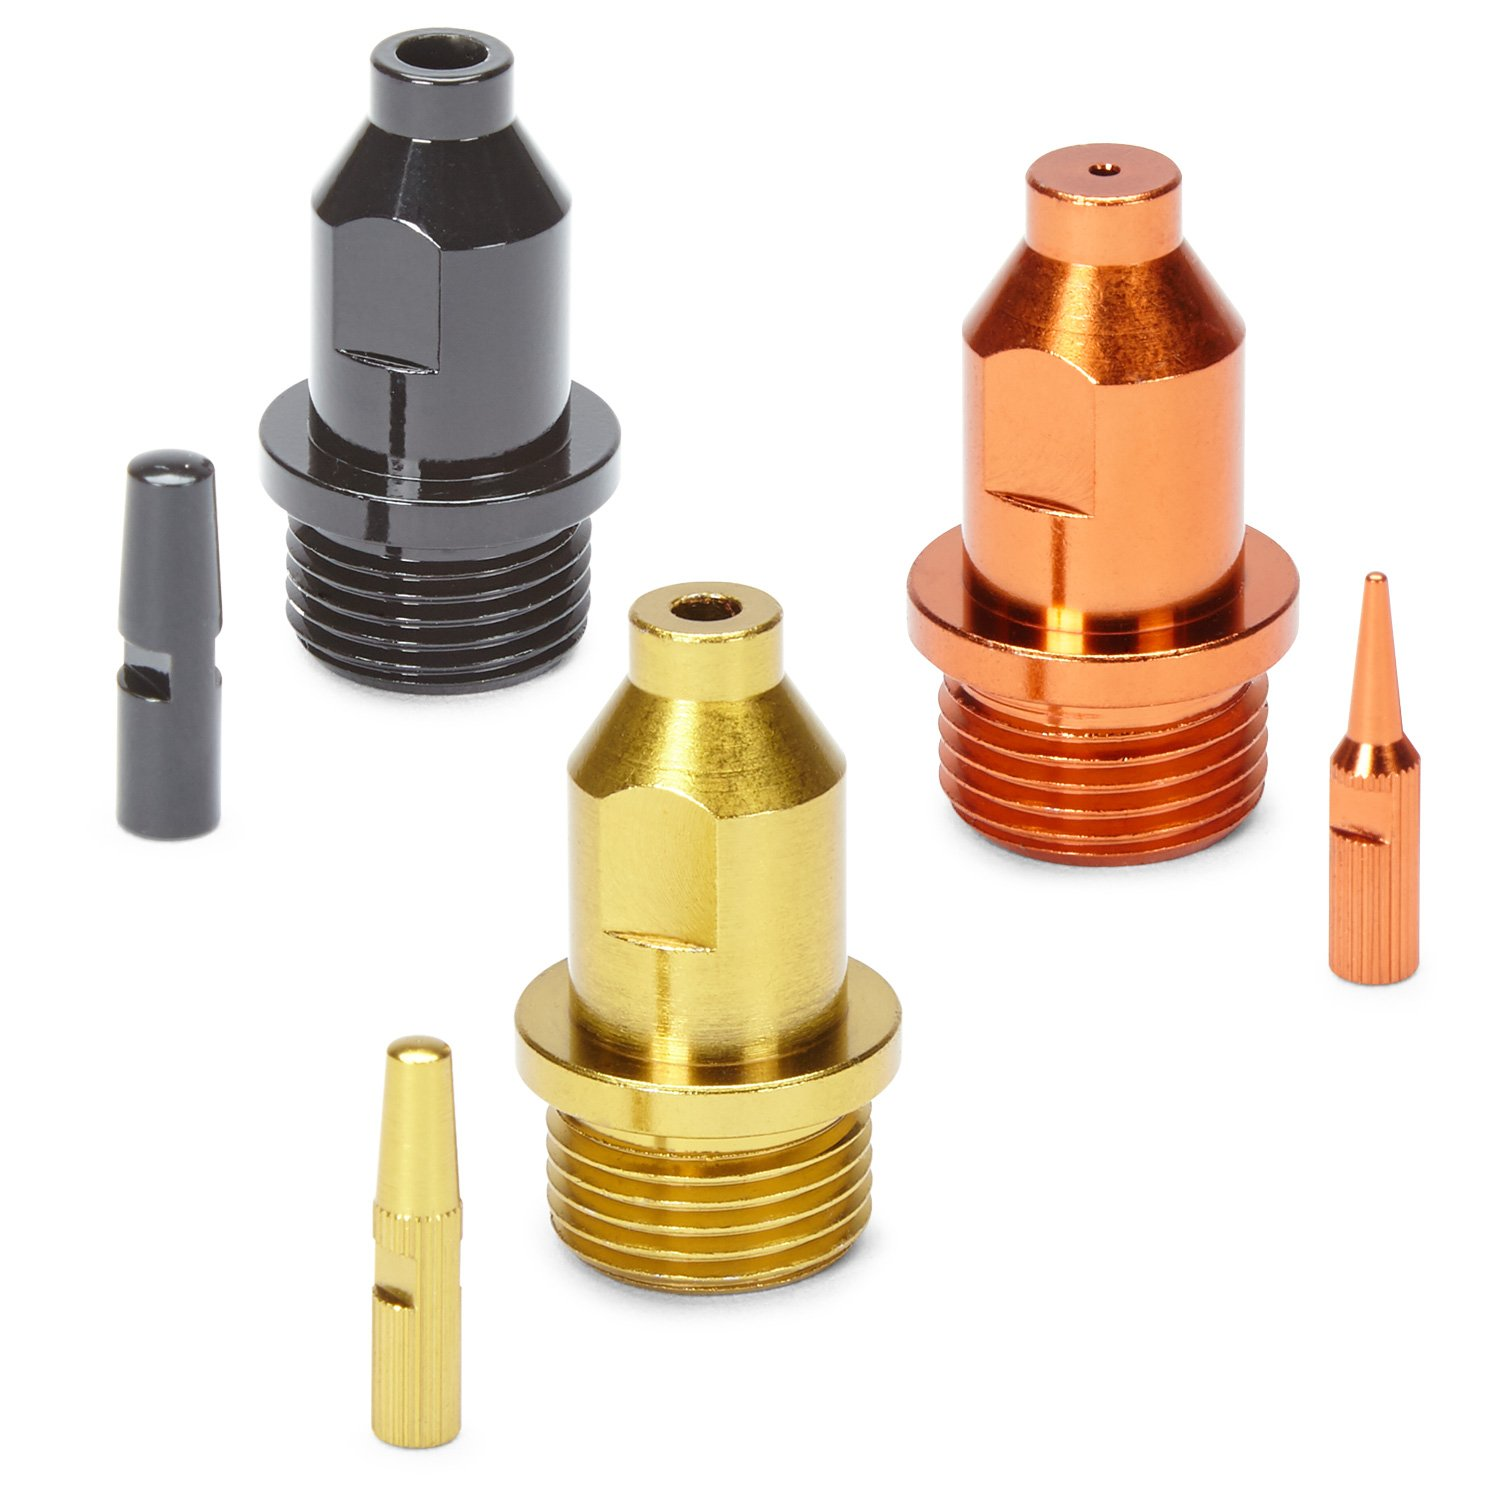 HomeRight C900110 Spray Tip Multi Pack for Super Finish Max (Orange, Yellow, Black), 3 Piece by HomeRight